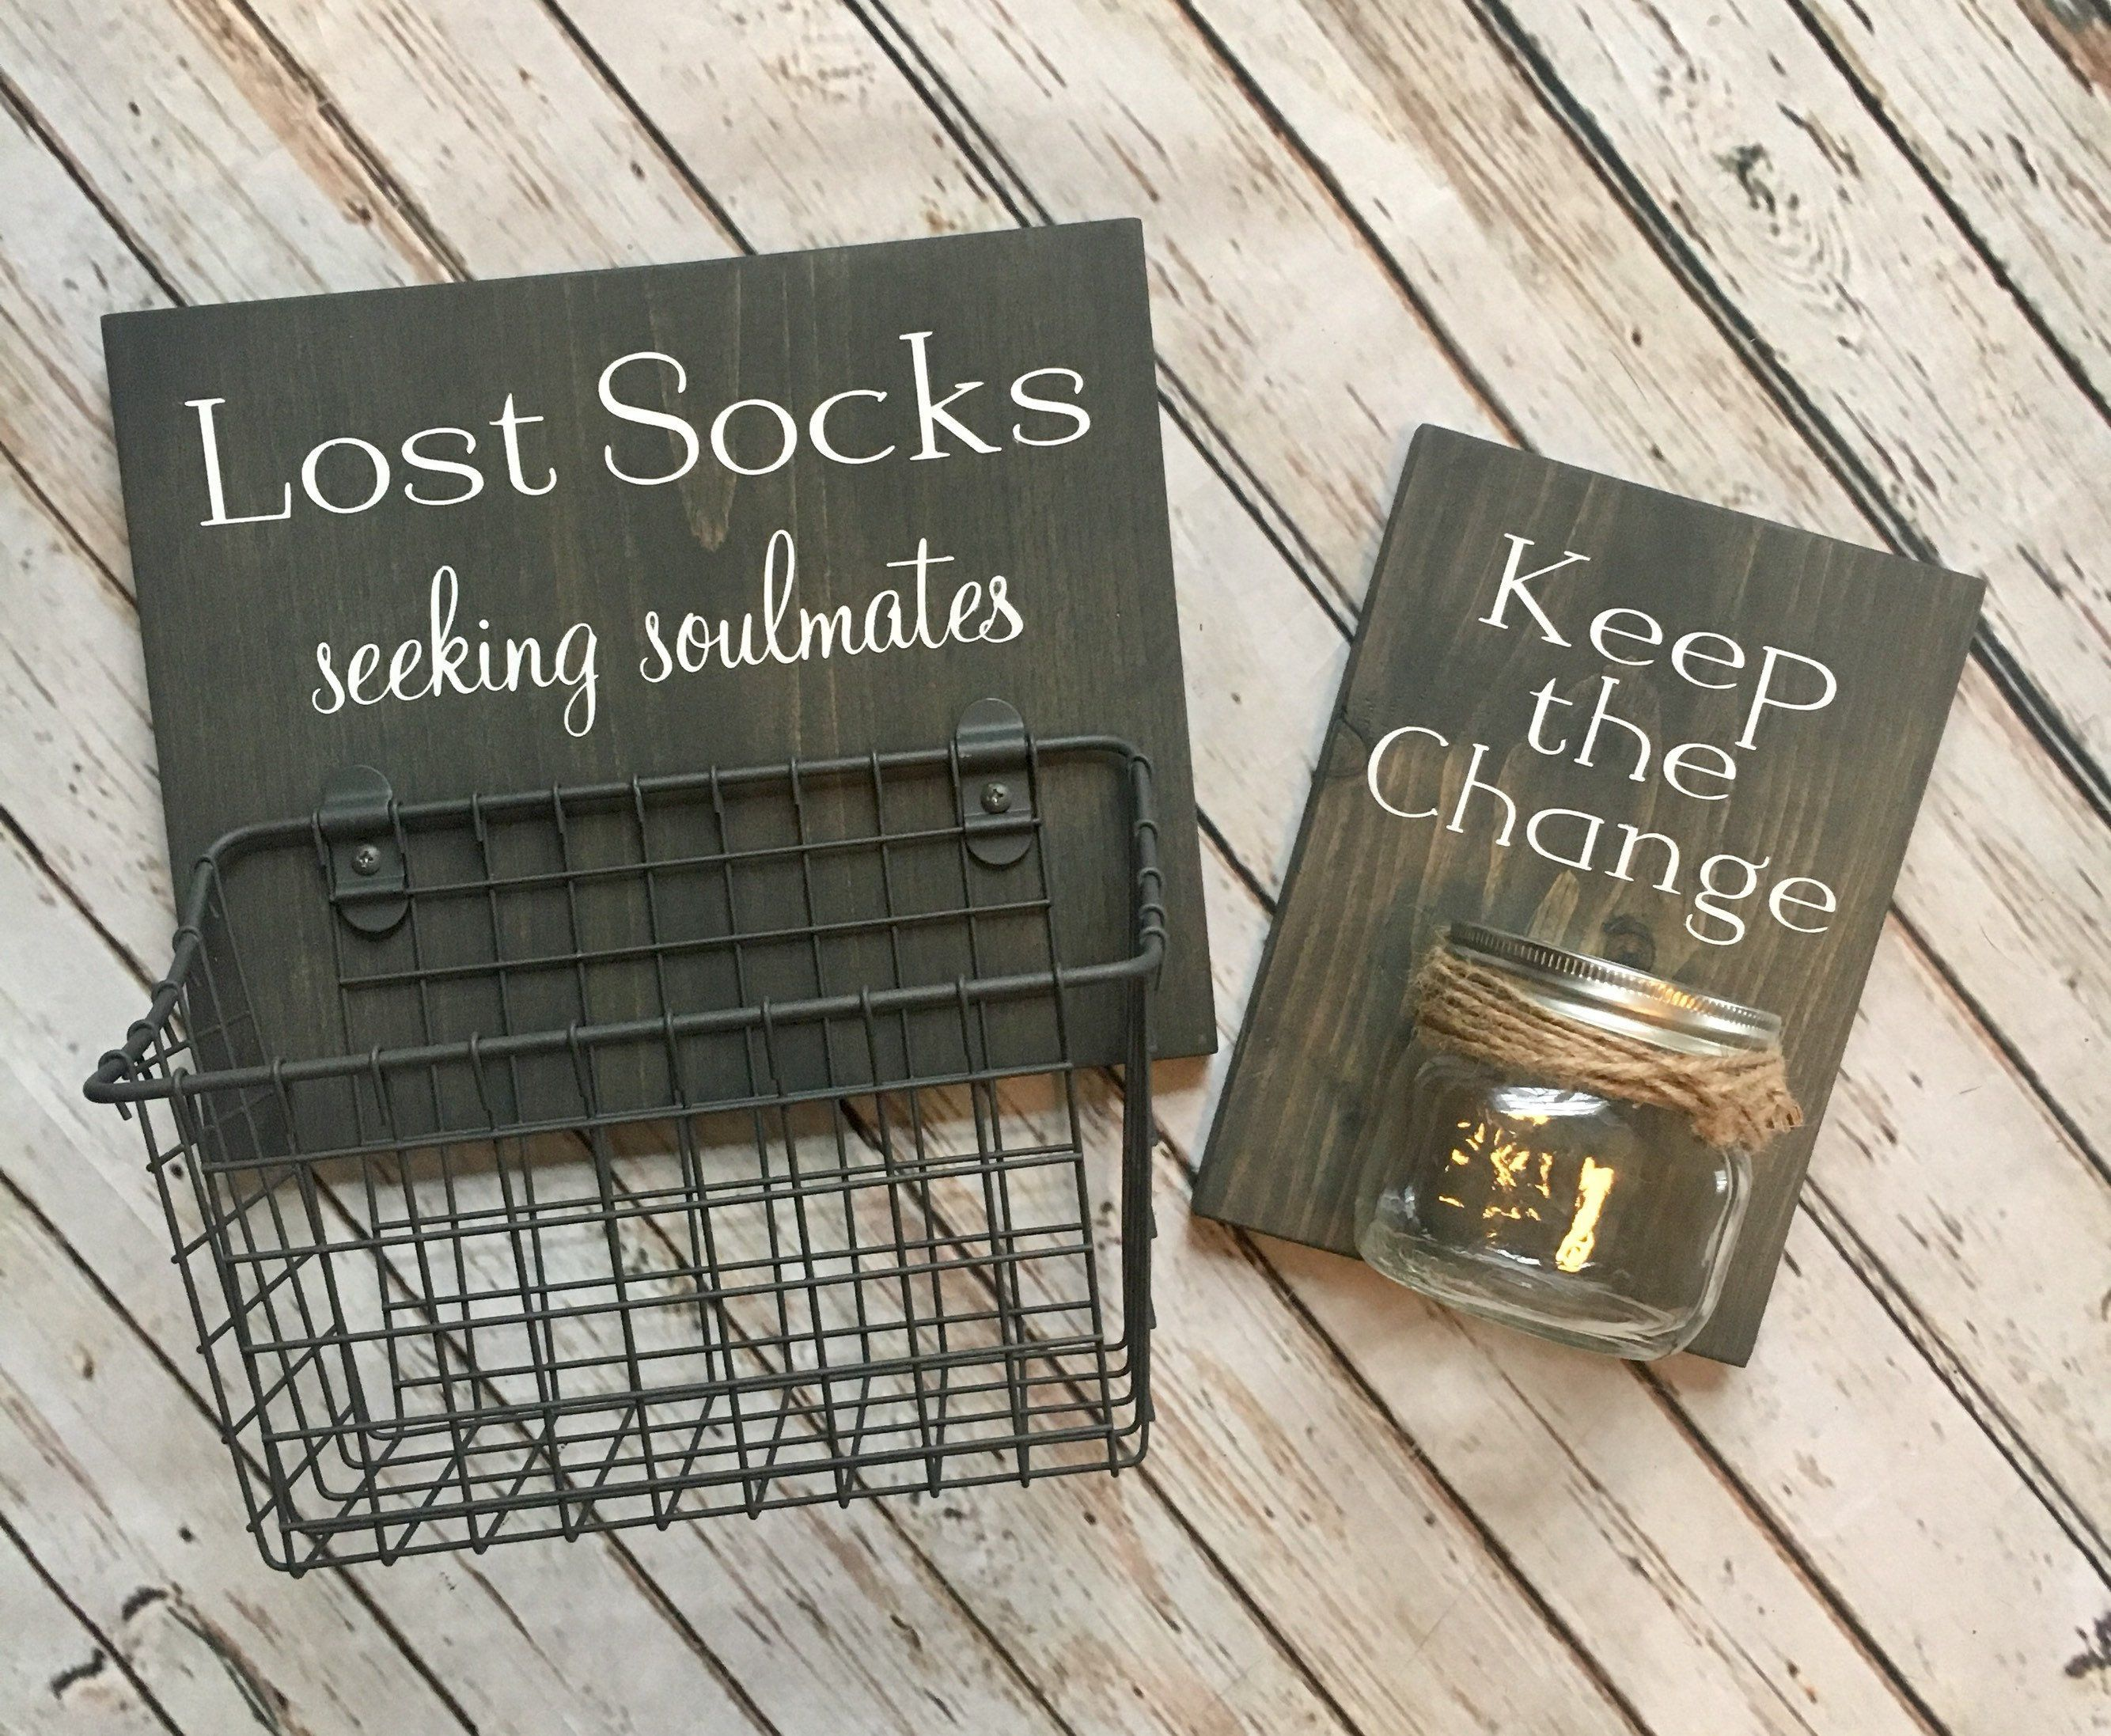 Laundry Room Sign Combo | Keep the Change AND Lost Socks - Seeking Soulmates (or Solemates) | wood sign with attached glass jar coin holder images